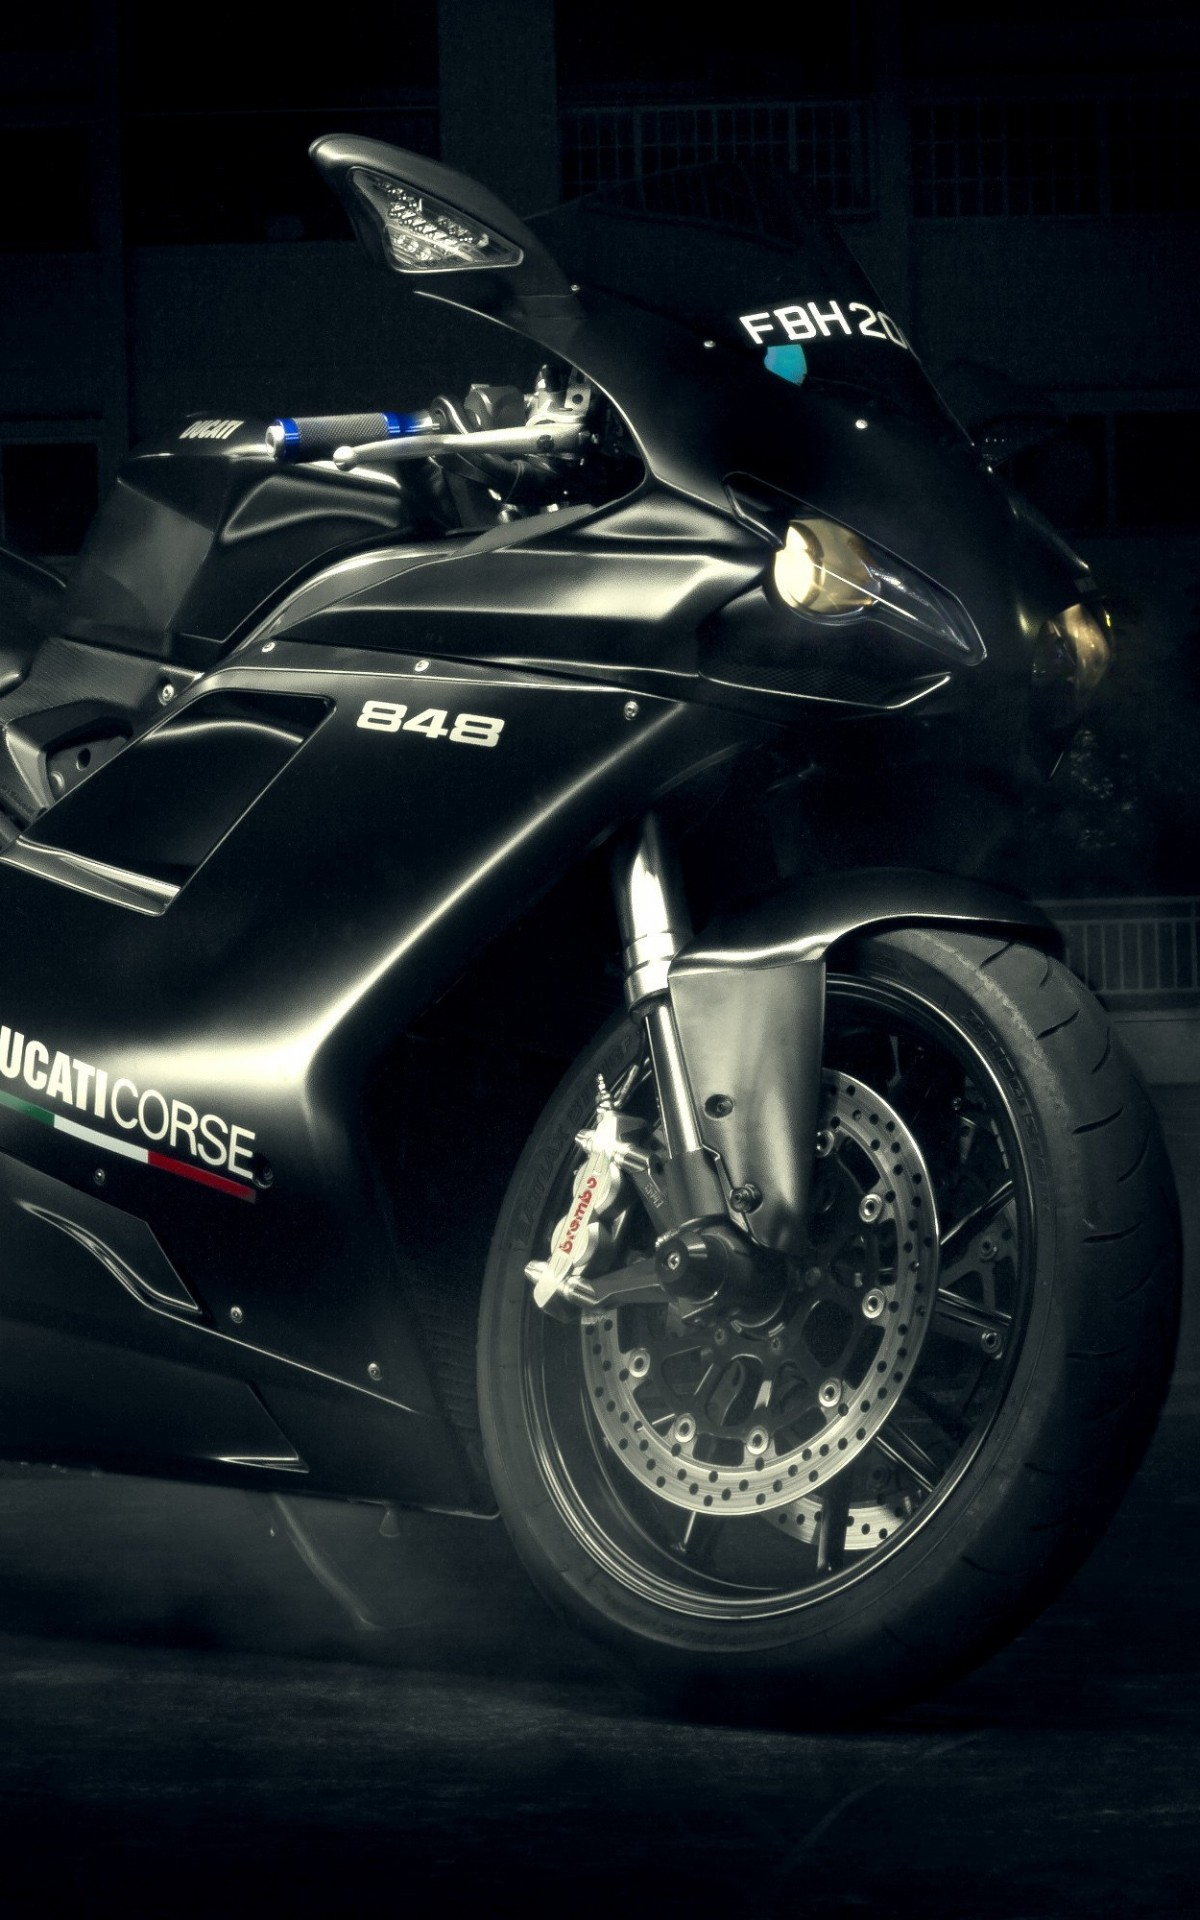 Ducati 848 Wallpaper for Amazon Kindle Fire HDX